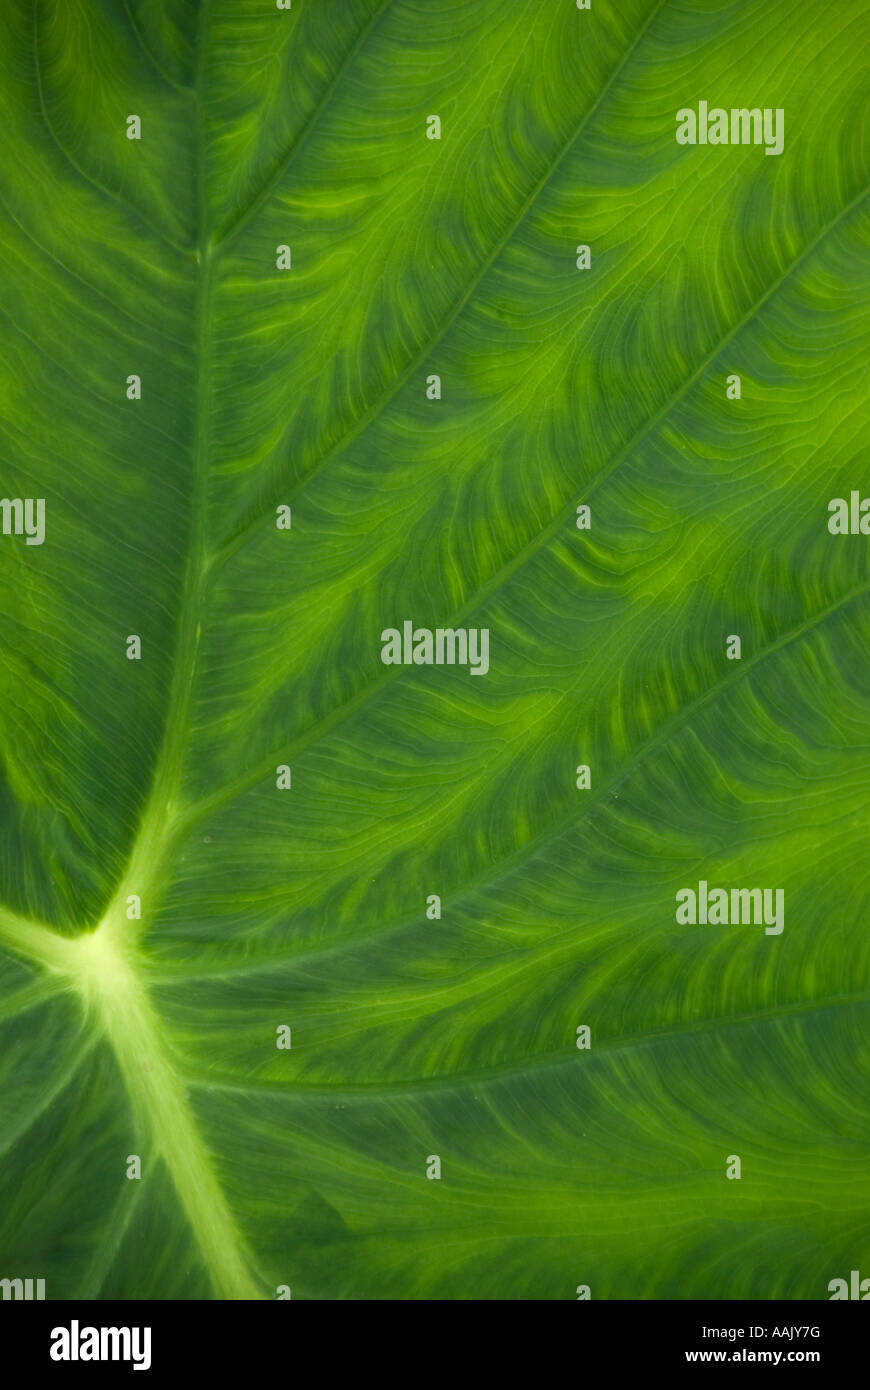 Taro, or Elephant Ears (Colocasia esculenta) leaf pattern - Stock Image